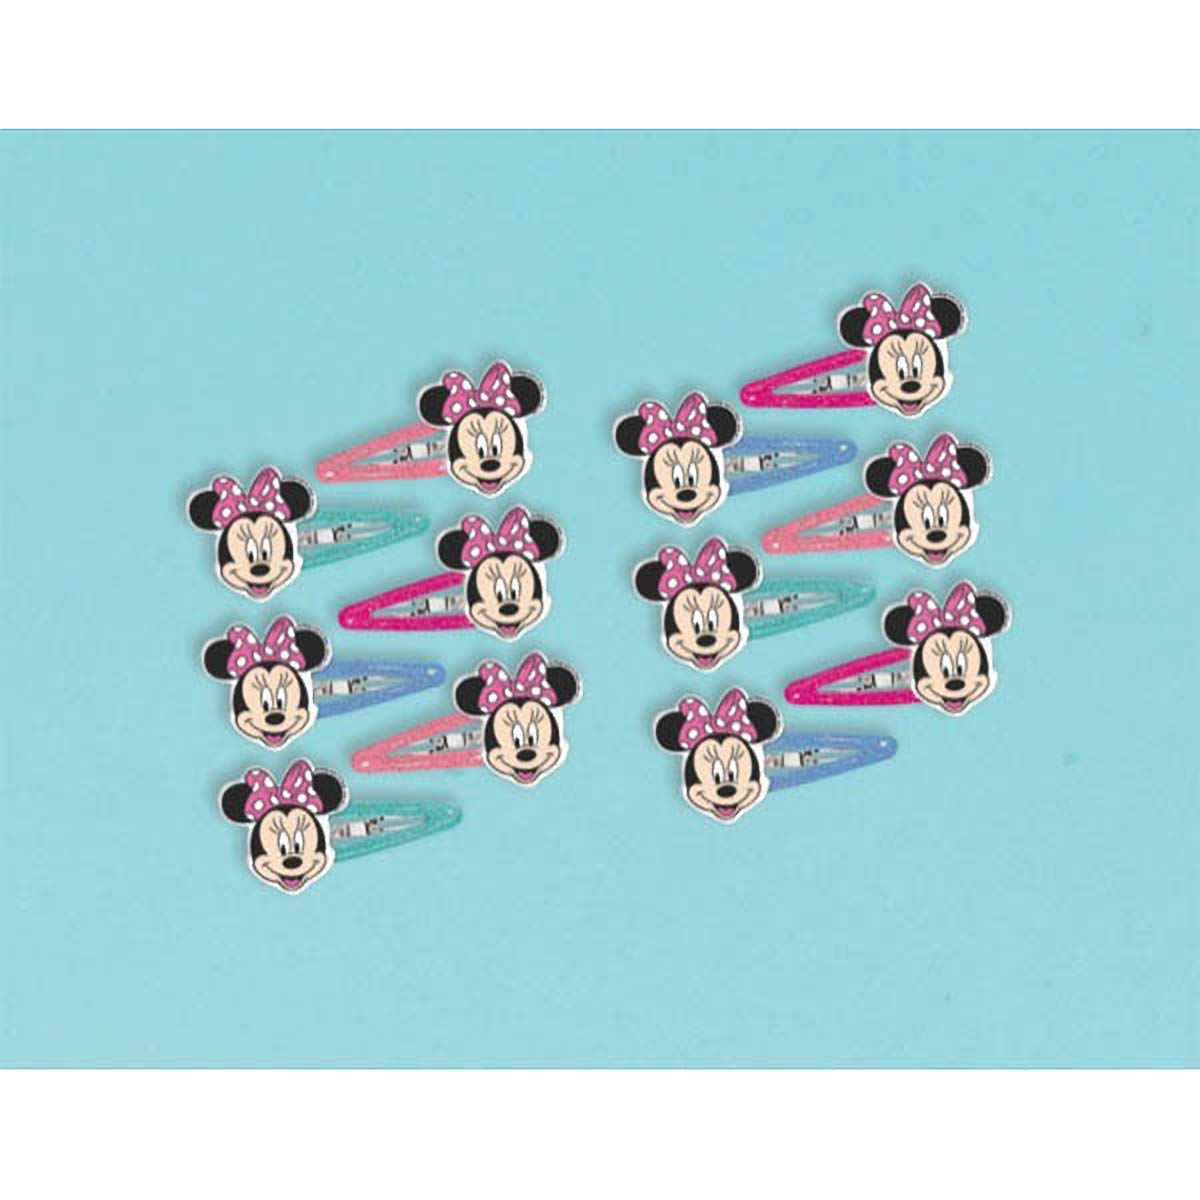 Disney Minnie Mouse Bow Hair Clip, Multi Color, 1X1 3/4-Inch (12 Pack) Amscan AM-390429